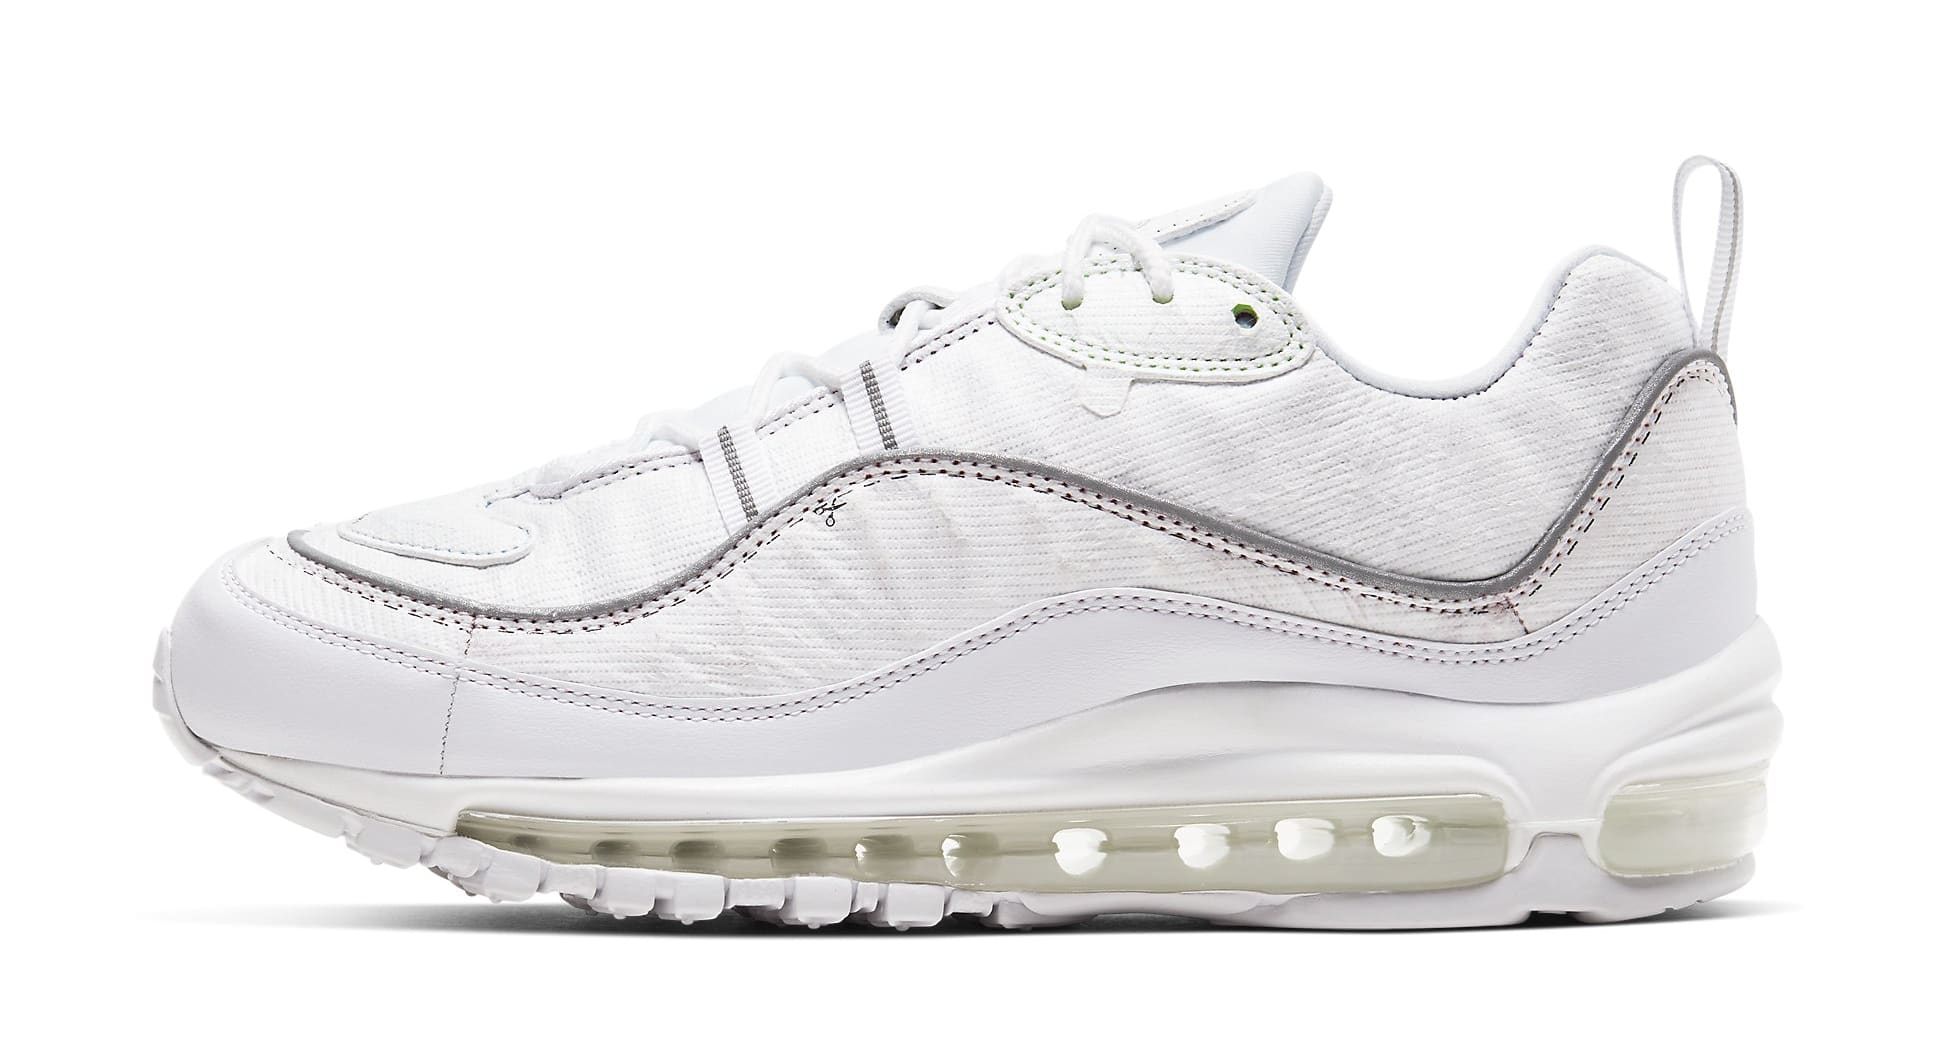 Nike Air Max 98 Tearaway CJ0634-101 Lateral